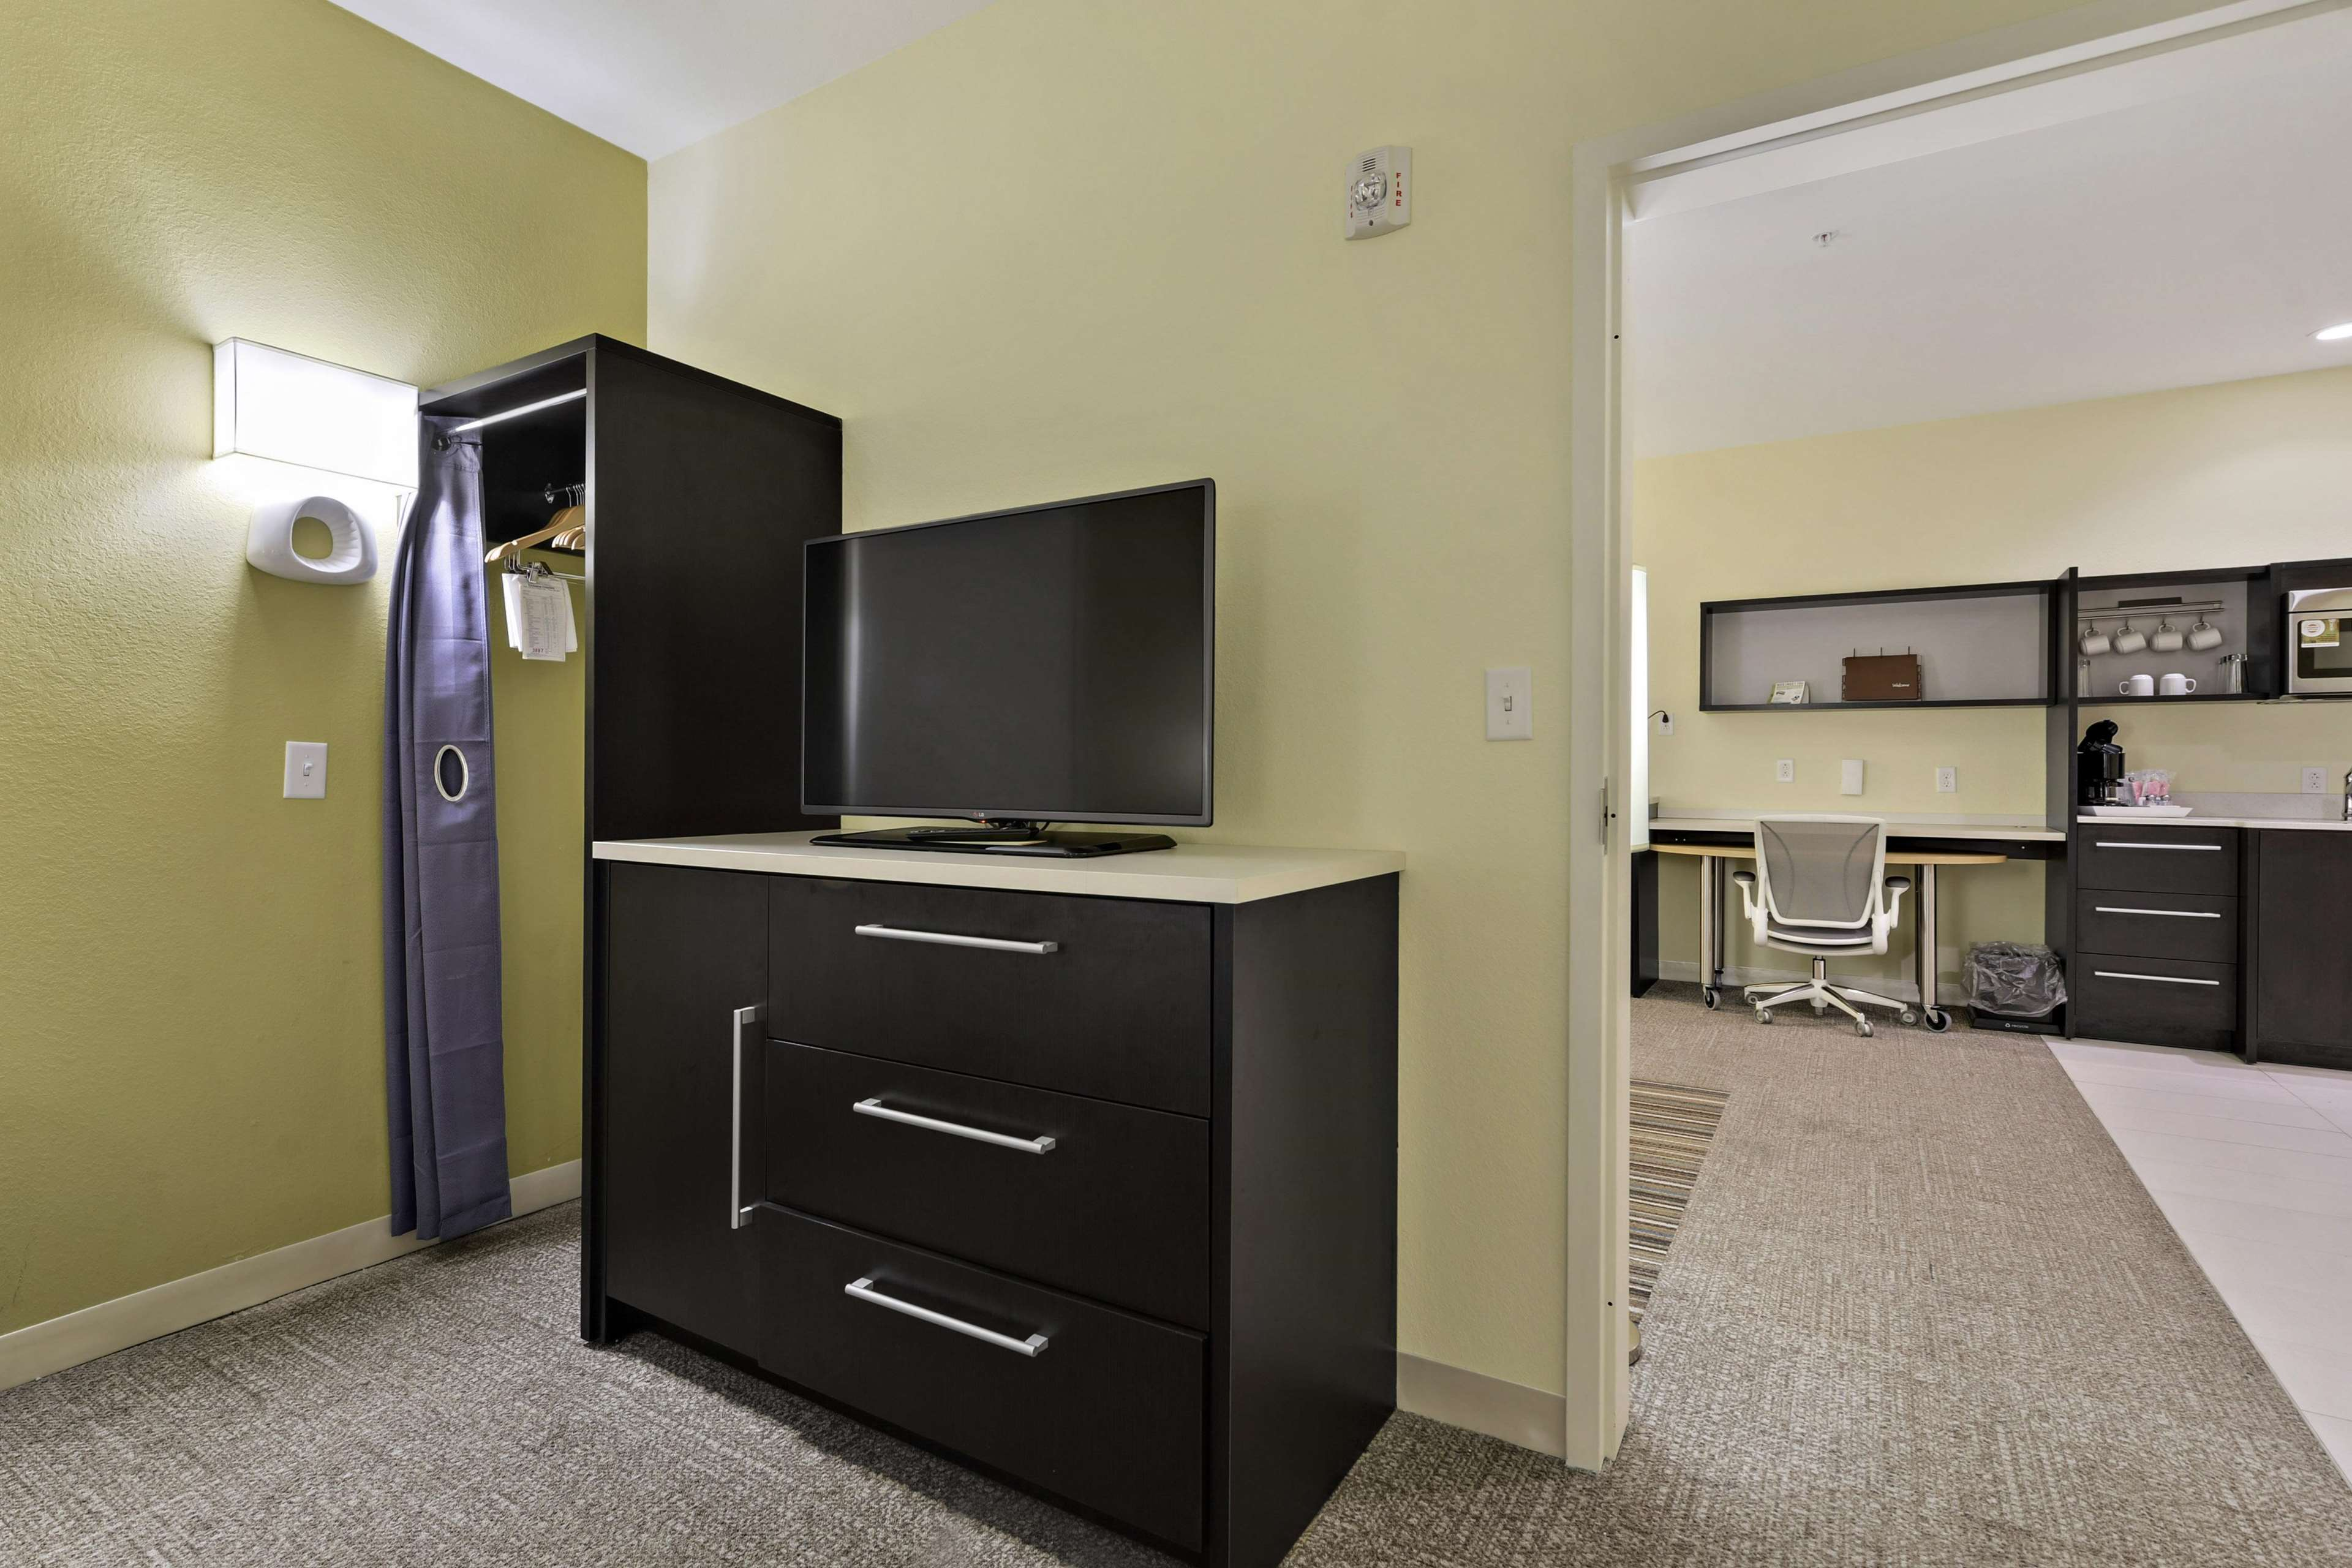 Home2 Suites by Hilton Gulfport I-10 image 29